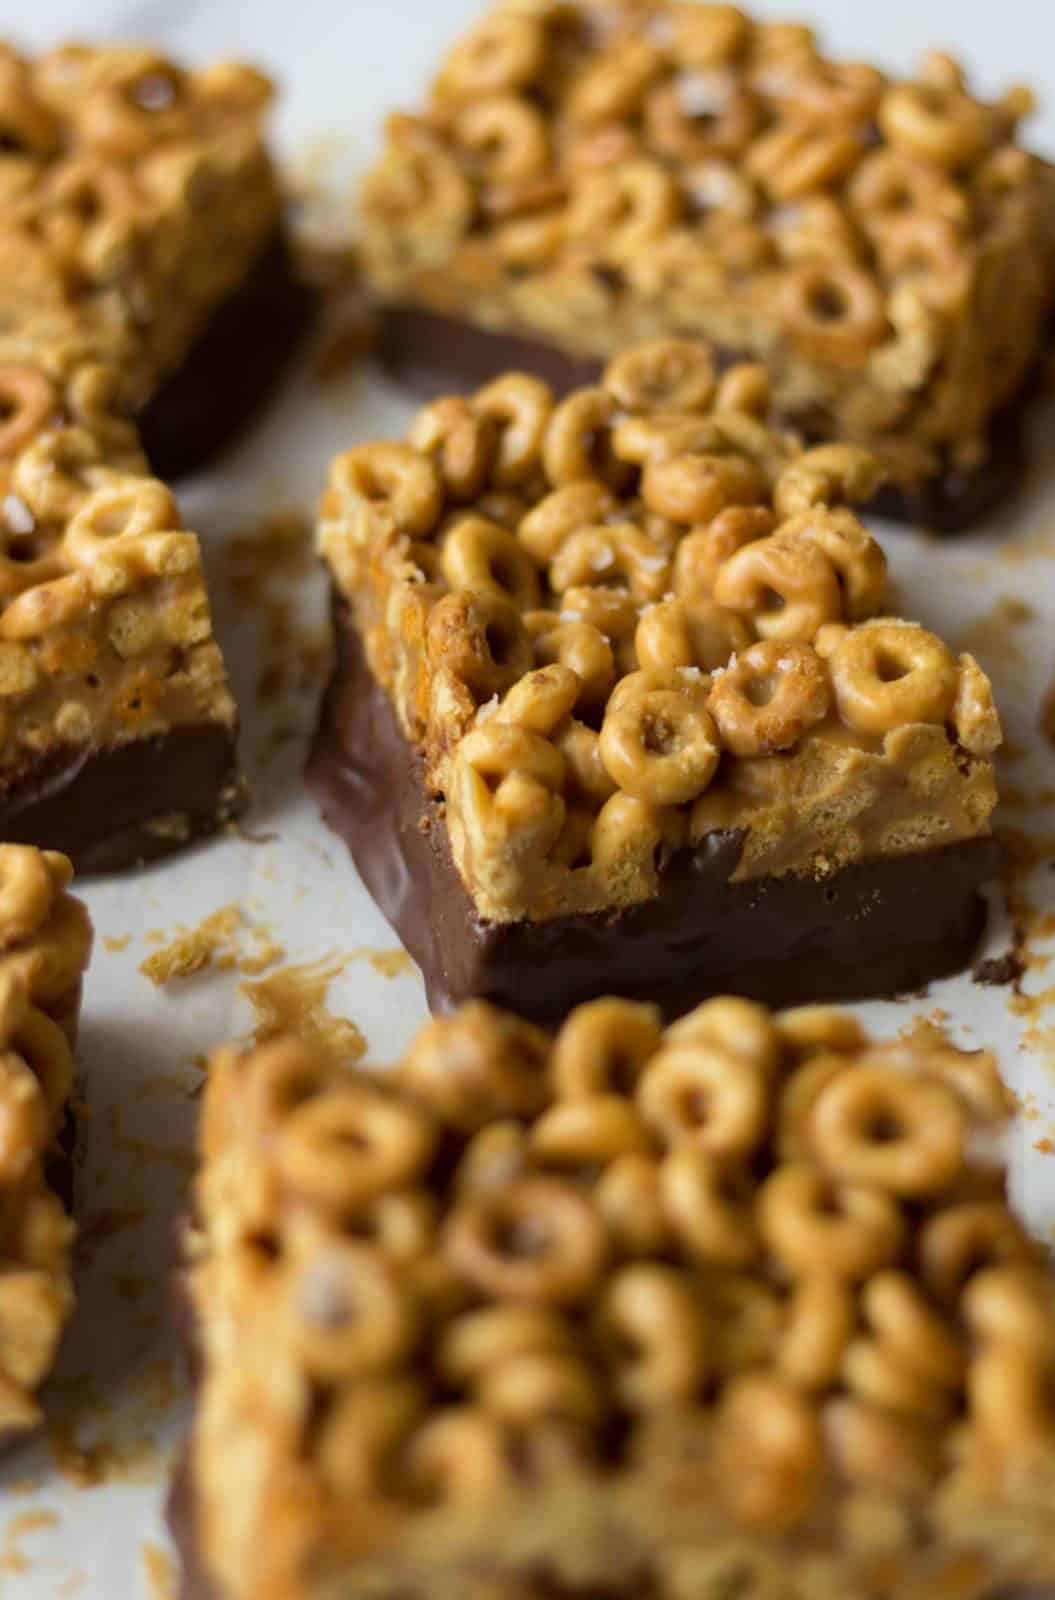 Chocolate-Dipped Peanut Butter Cereal Bars